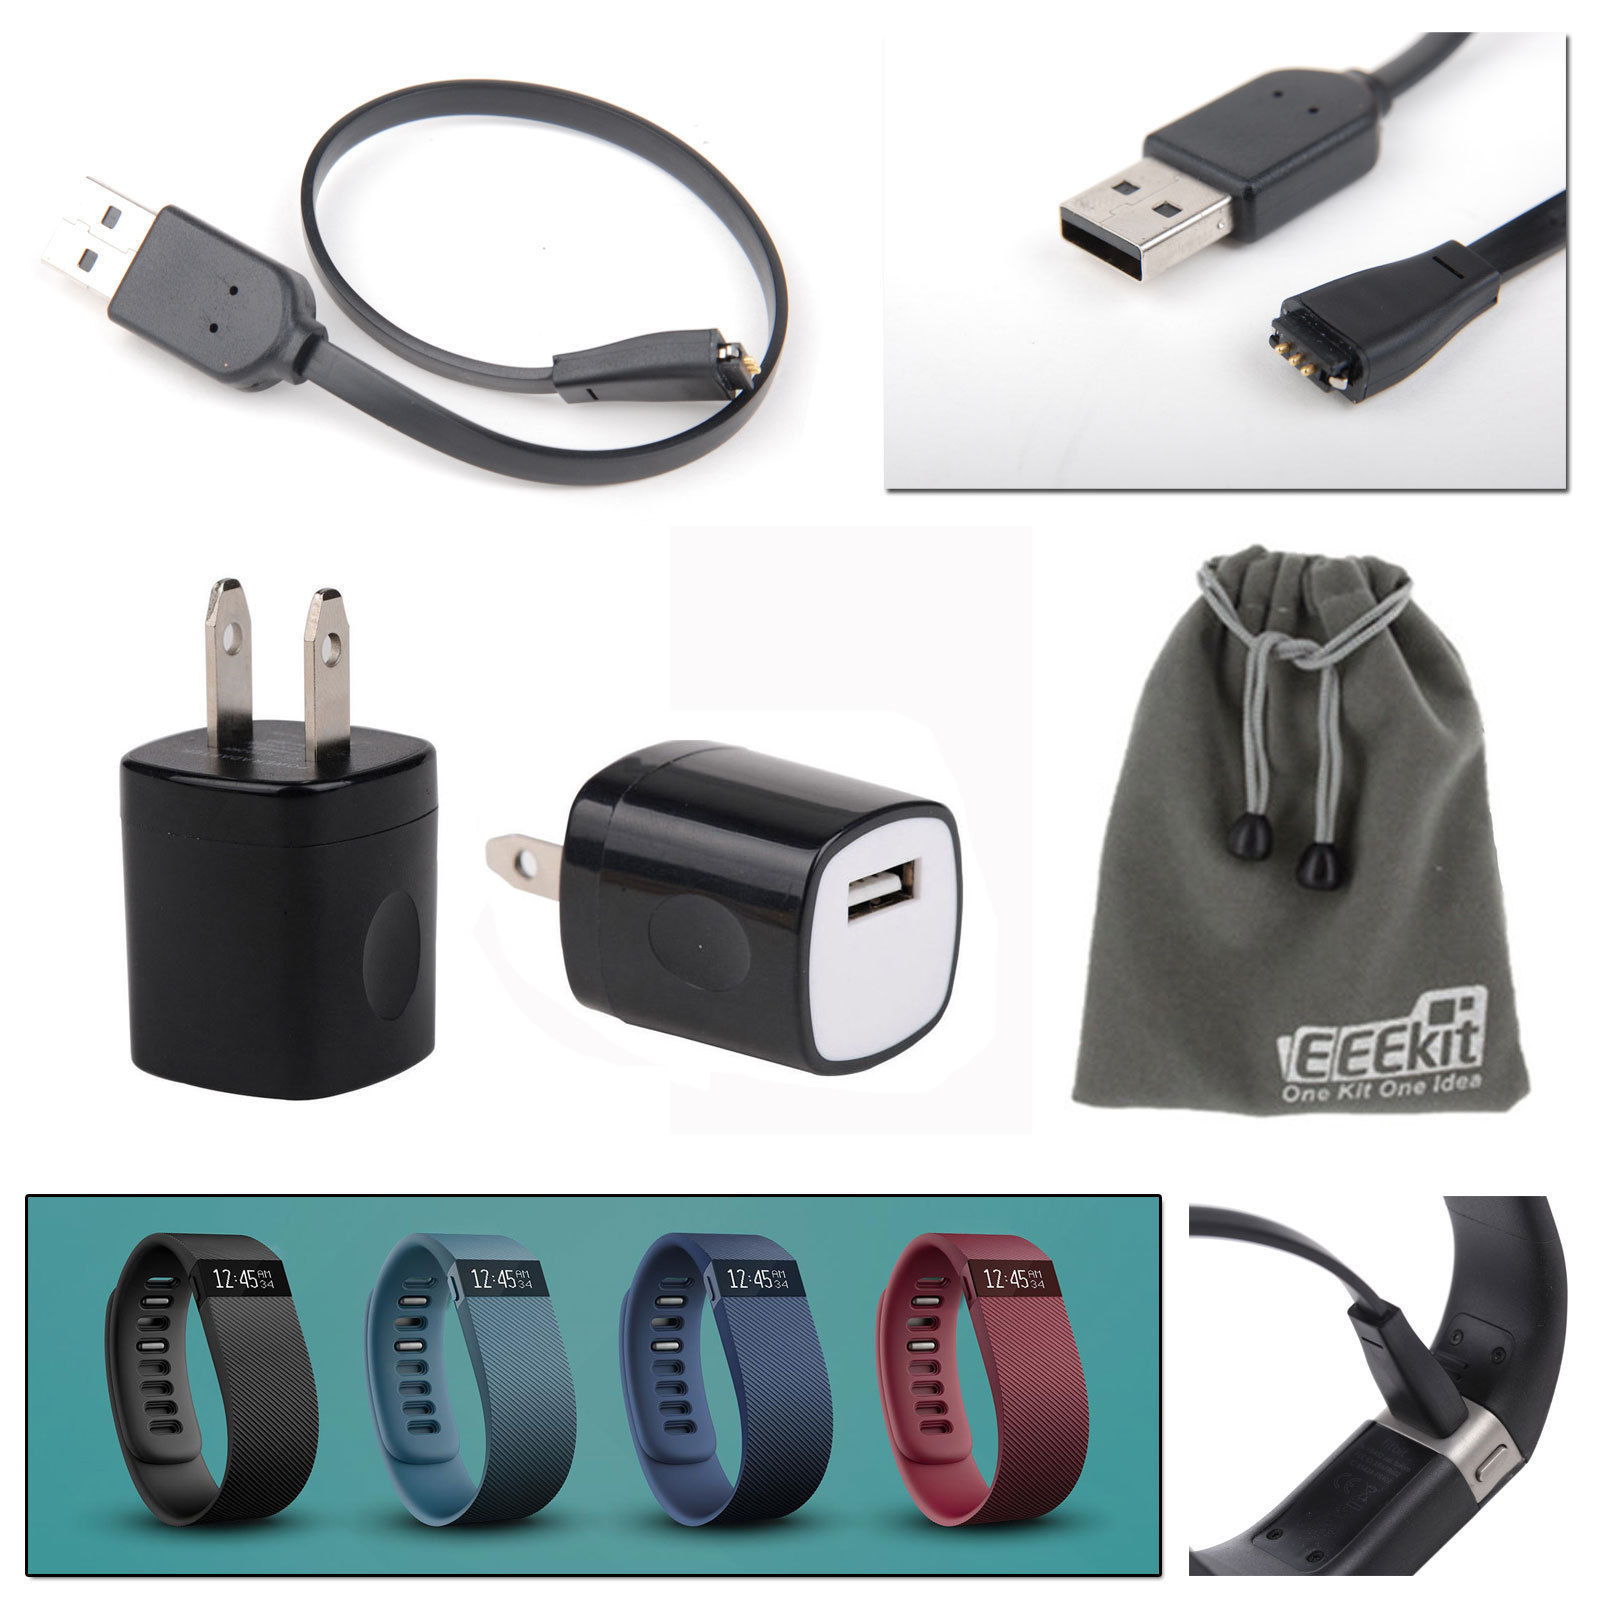 EEEEKit for Fitbit Charge/Force Wristband Fitness /Activity Tracker,Replacement Charger Cable+Wall Charger Adapter